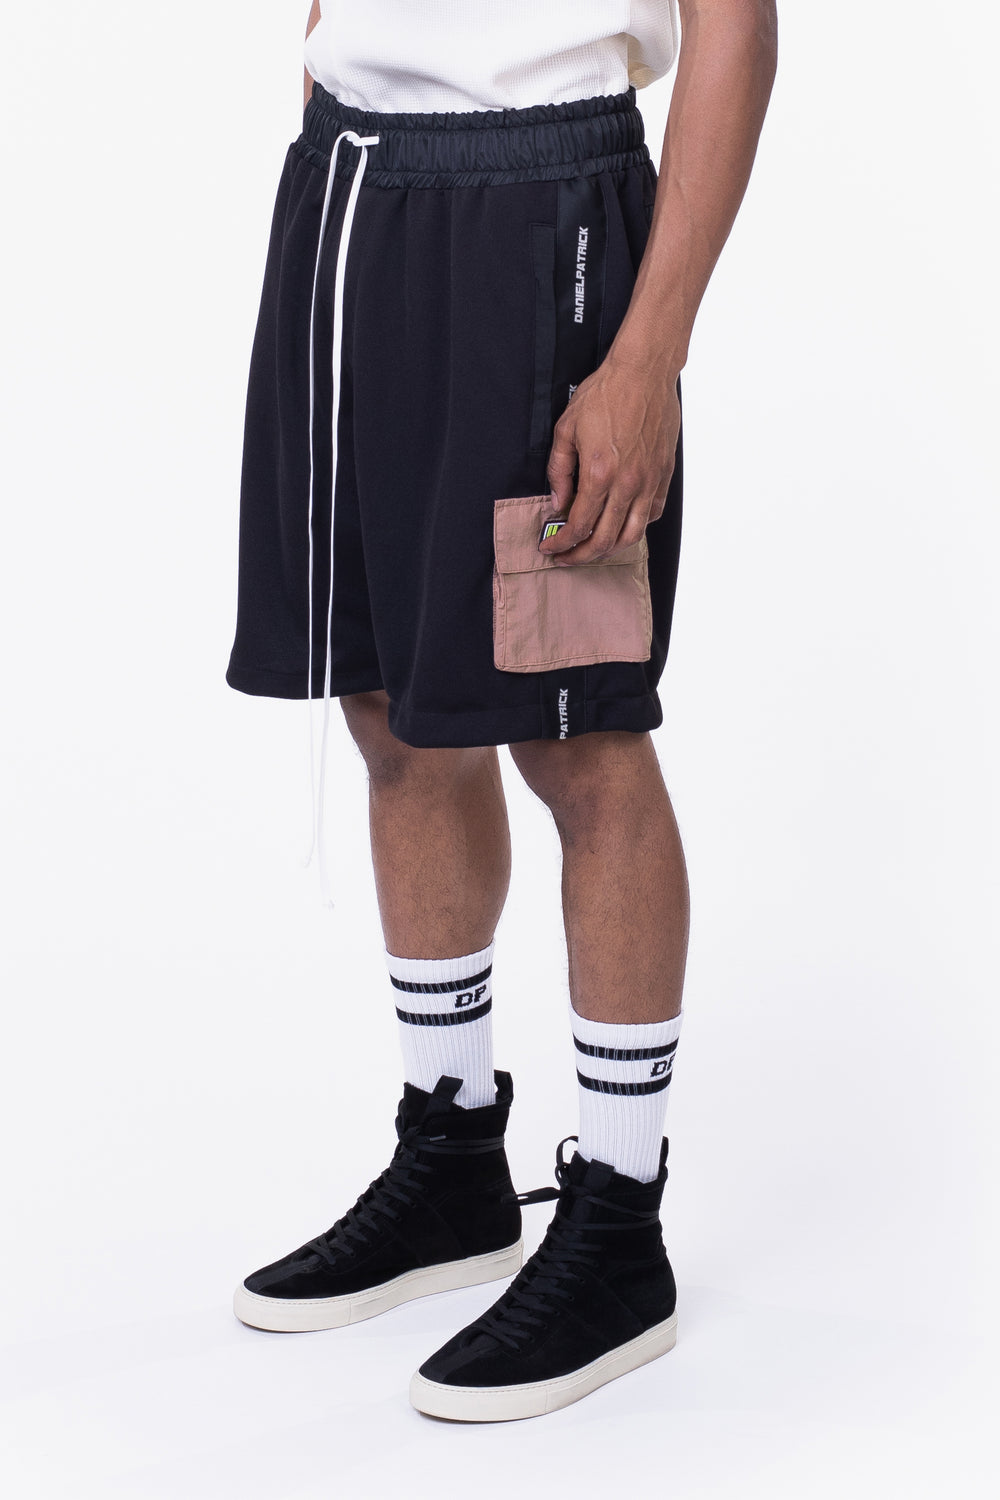 cargo gym short / black + dust